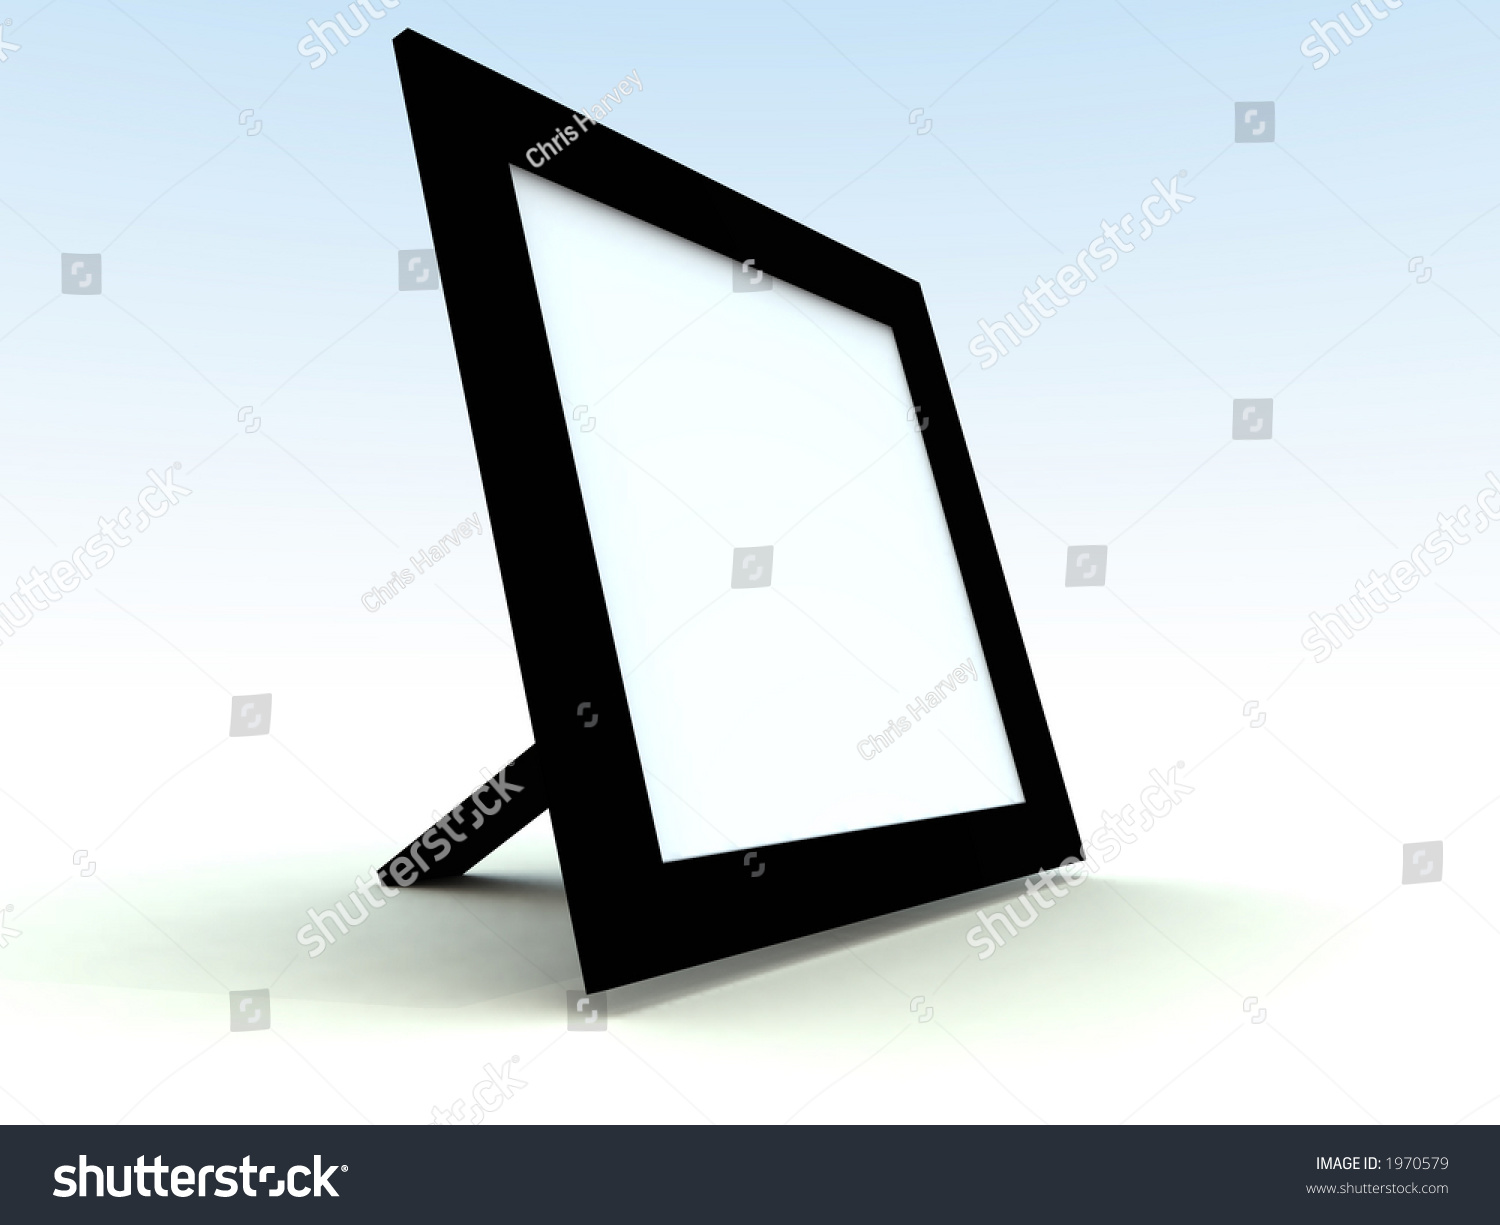 Computer created picture frame plane background stock illustration a computer created picture frame with a plane background jeuxipadfo Gallery